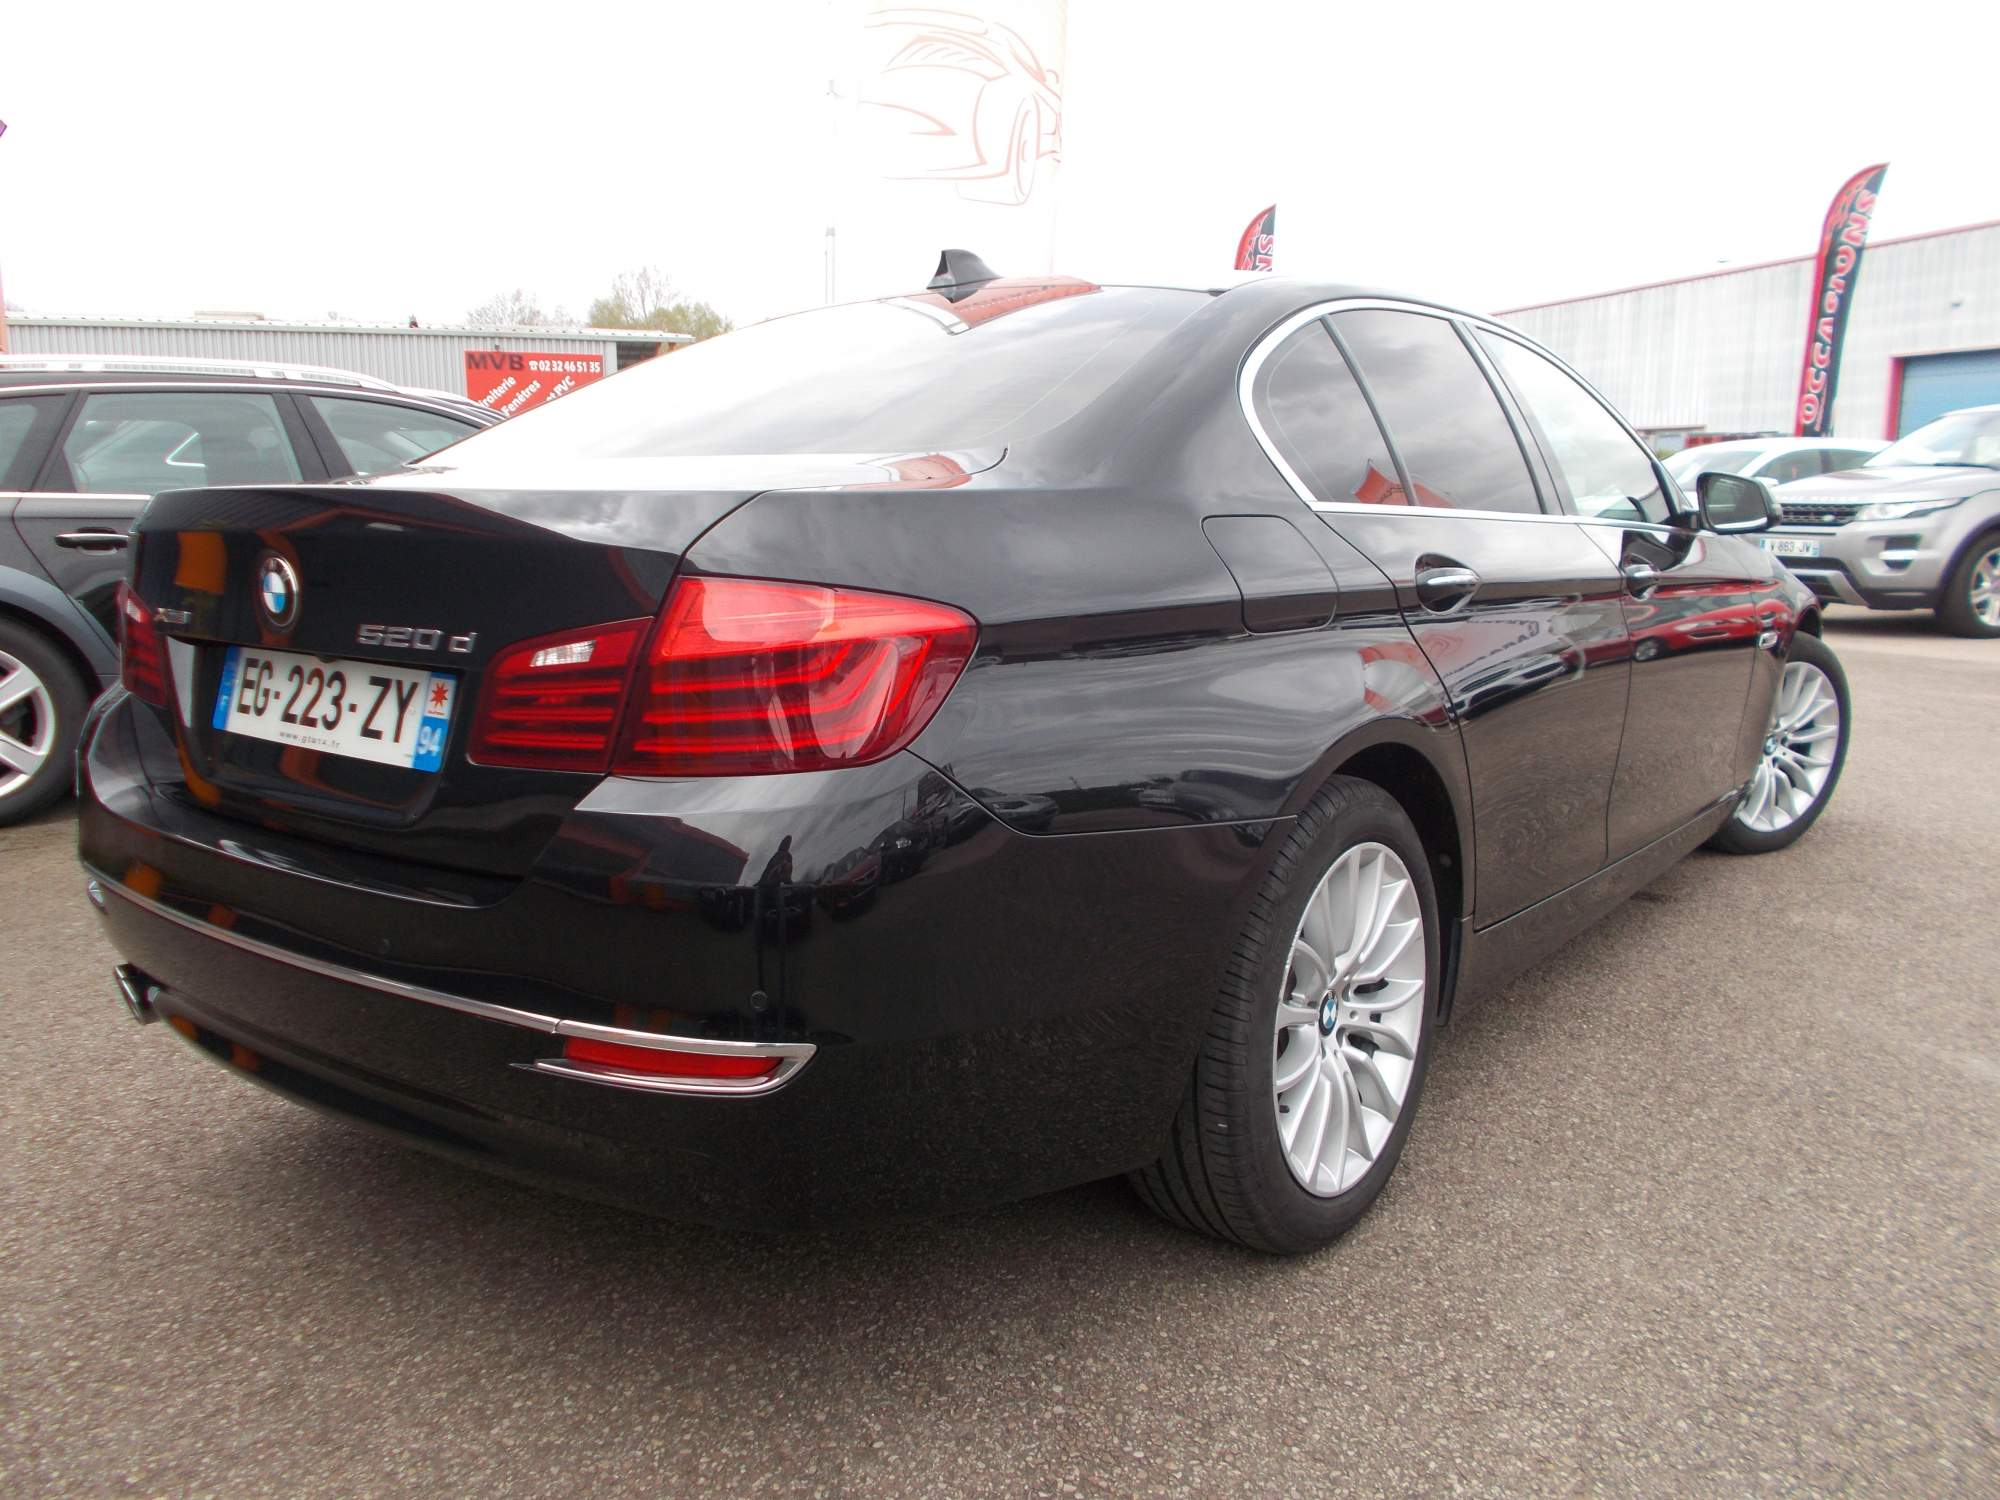 peugeot 308 ii hdi 92 cv allure avec seulement 45700 kms. Black Bedroom Furniture Sets. Home Design Ideas